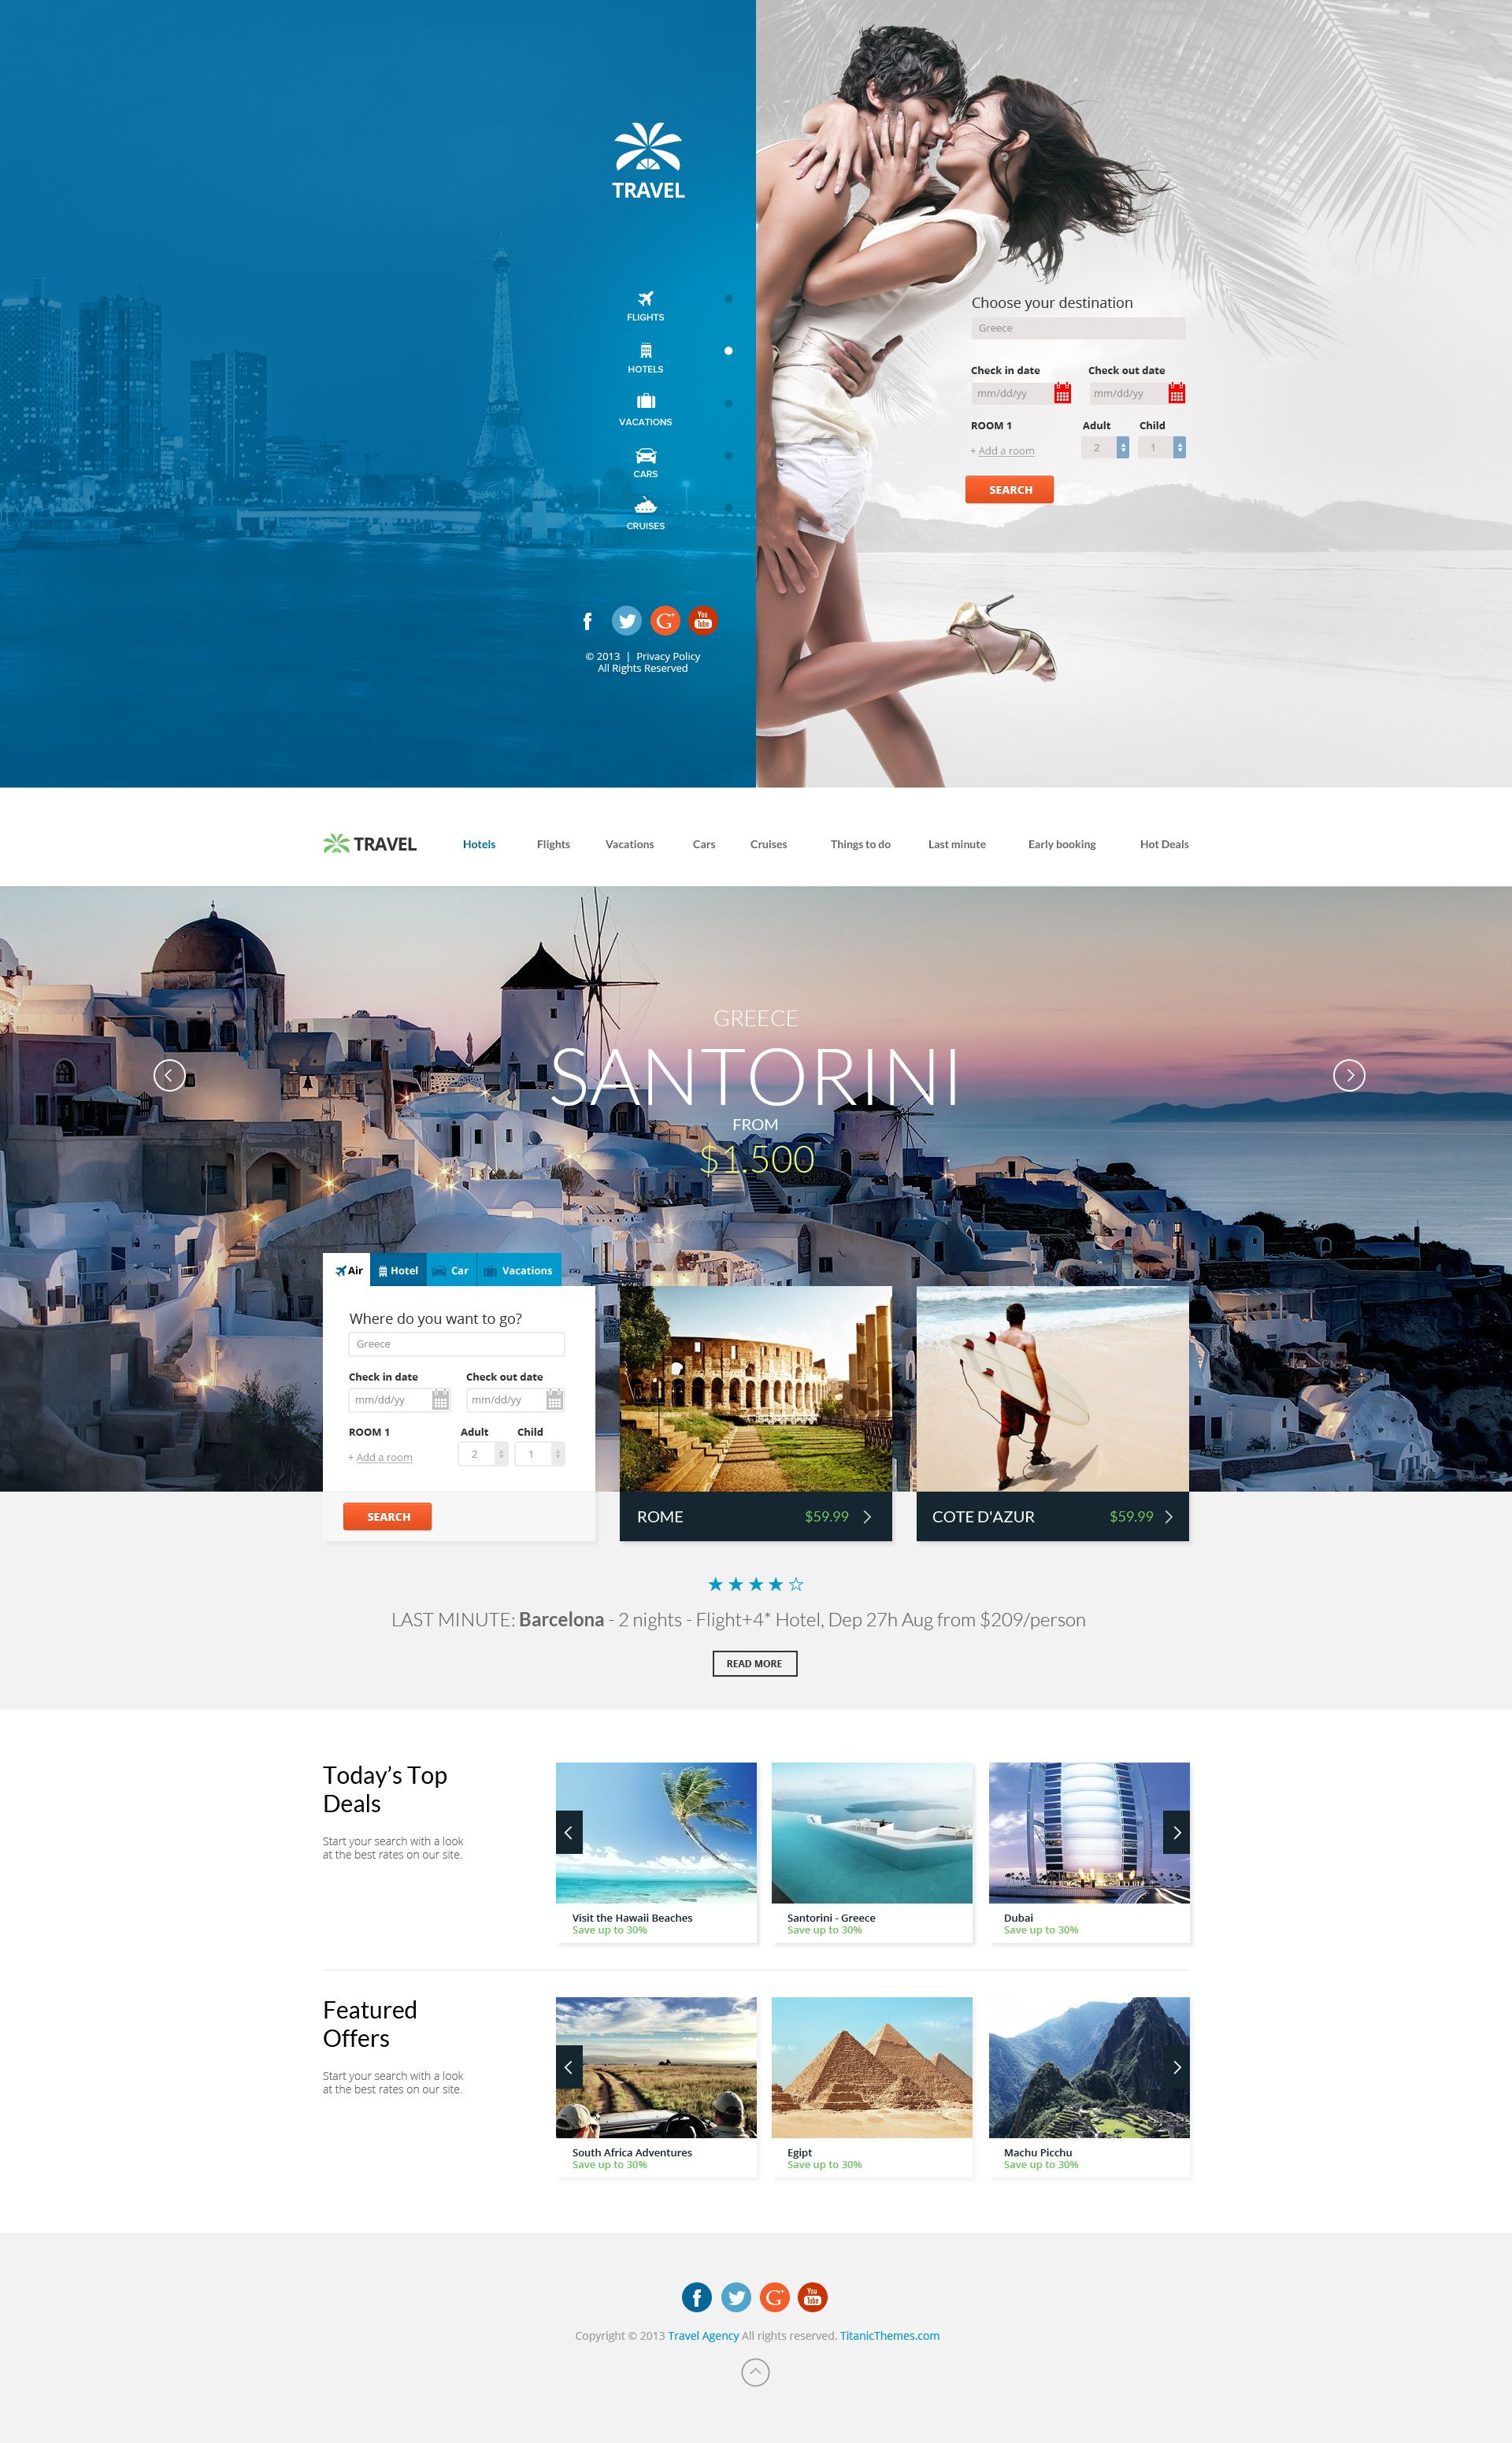 Travel agency multipurpose booking psd template by dajydesigns travel agency multipurpose booking psd template by dajydesigns on deviantart webdesign pronofoot35fo Image collections